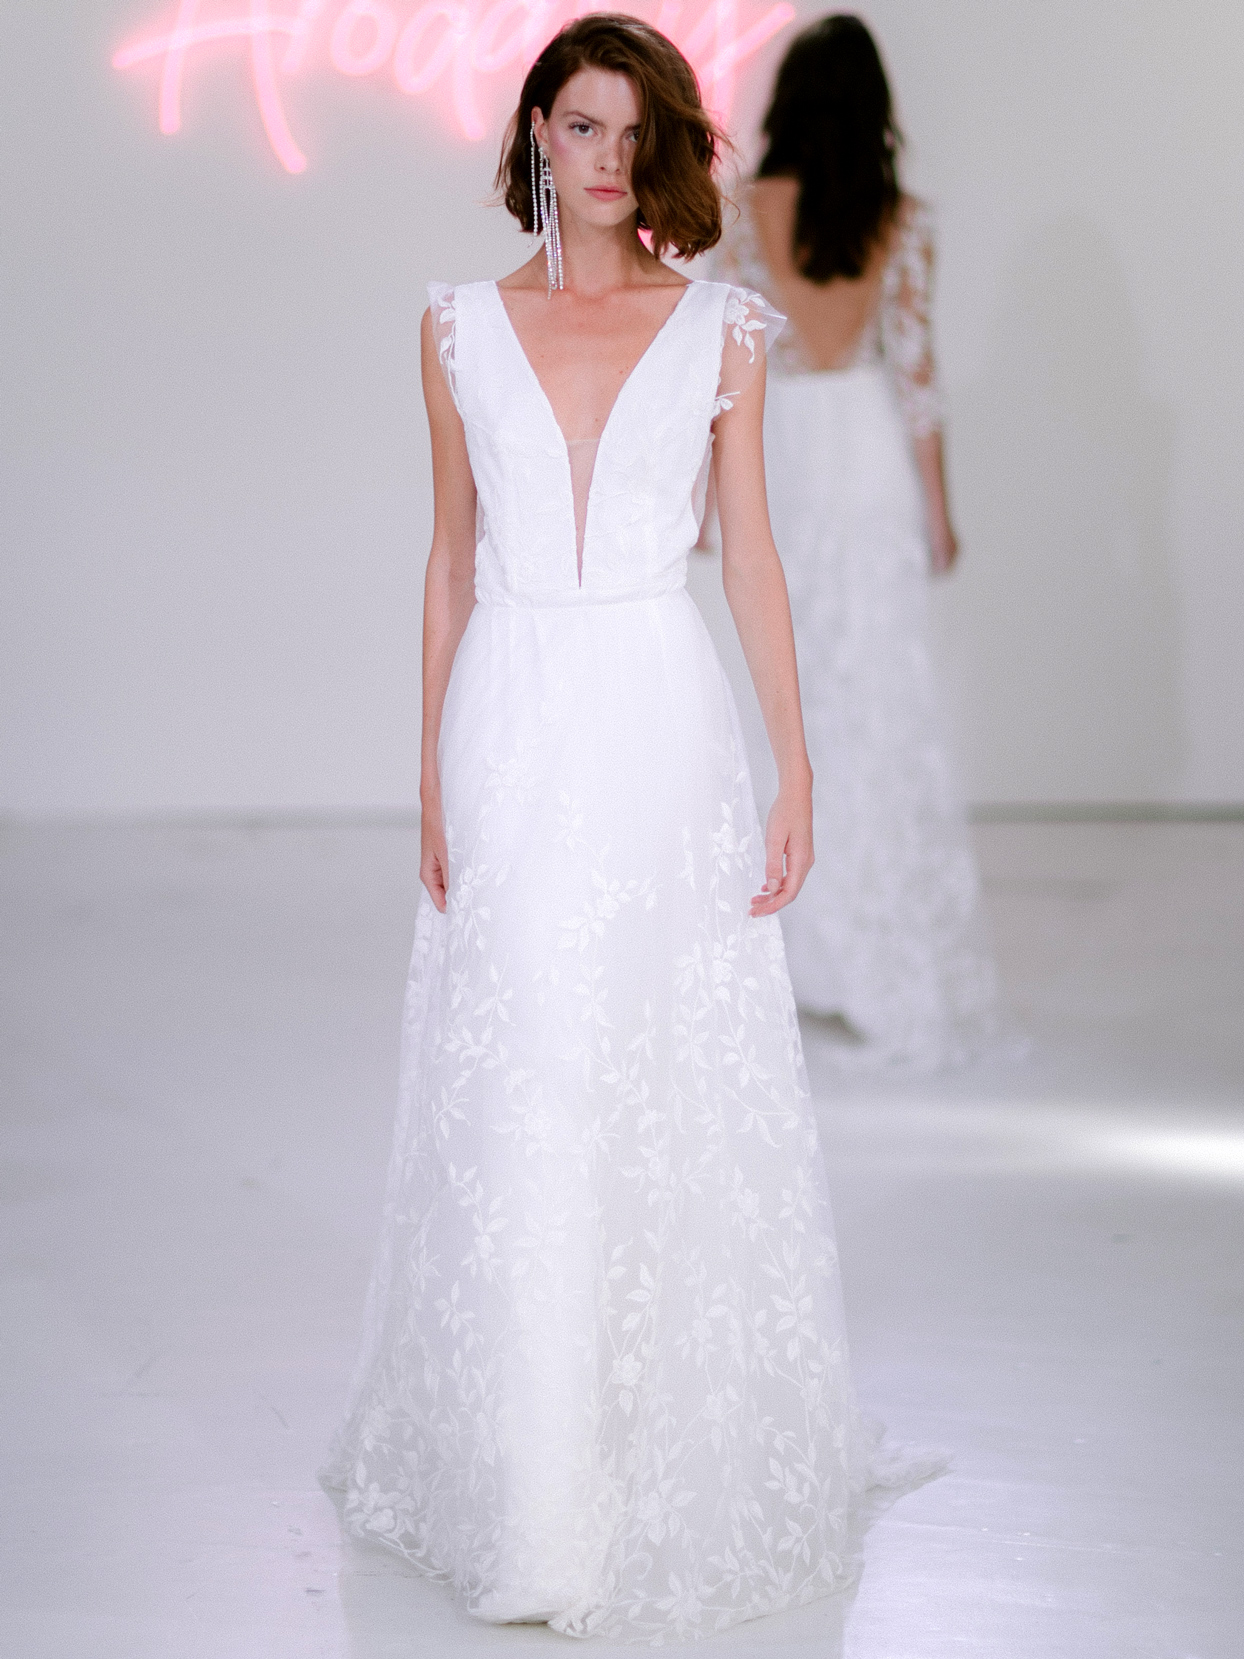 Rime Arodaky X The Mews Bridal plunging v-neck lace cap sleeves wedding dress fall 2020